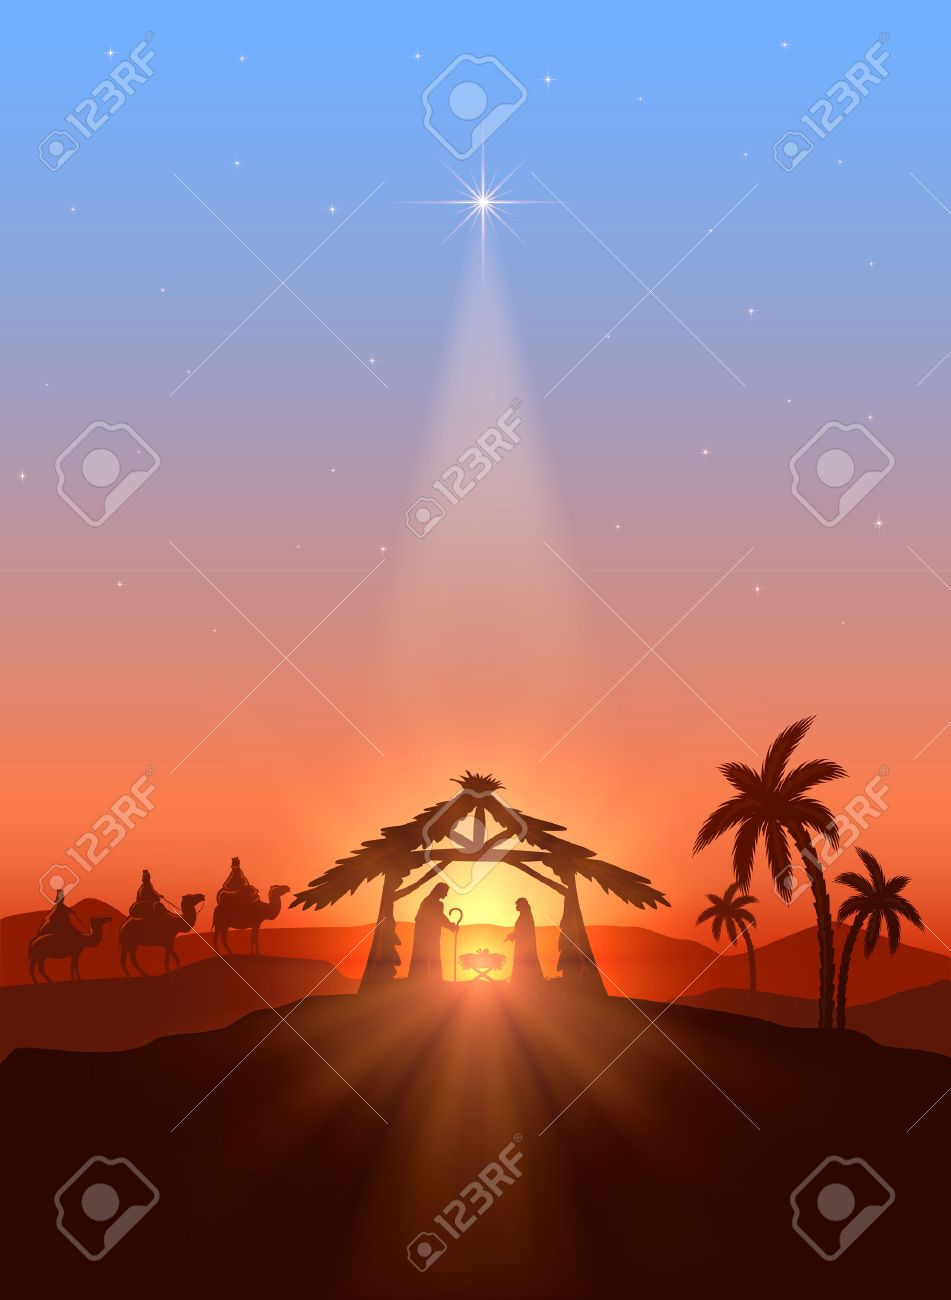 Christmas Jesus Birth Images.Christian Christmas Background With Shining Star Birth Of Jesus